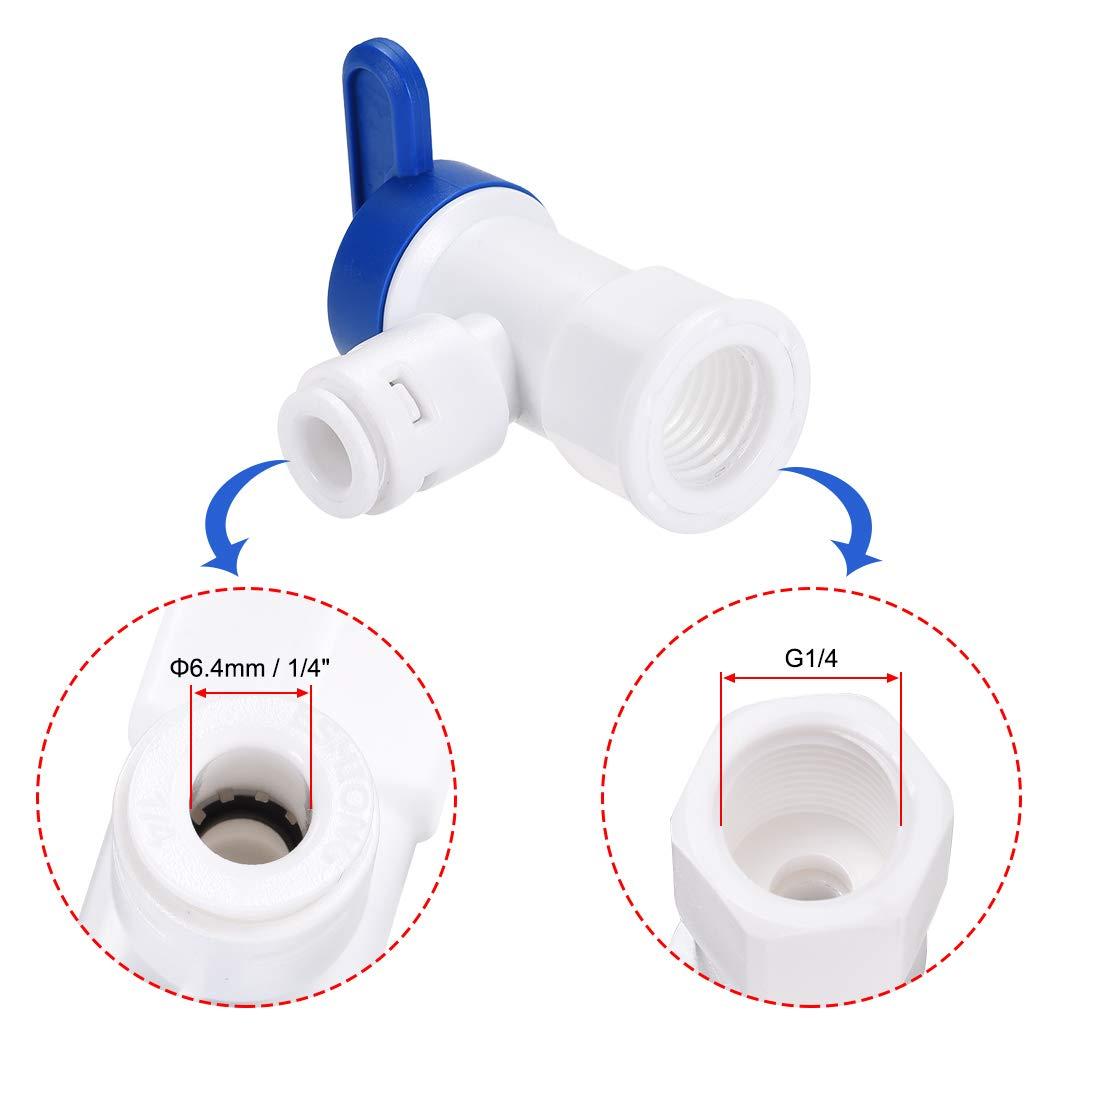 Water Tube Fitting uxcell Elbow Quick Connector Ball Valve Blue Handle Water Purifiers Water Filters for RO Water Systems G1//4 Female Thread White 2Pcs 1//4 Tube OD